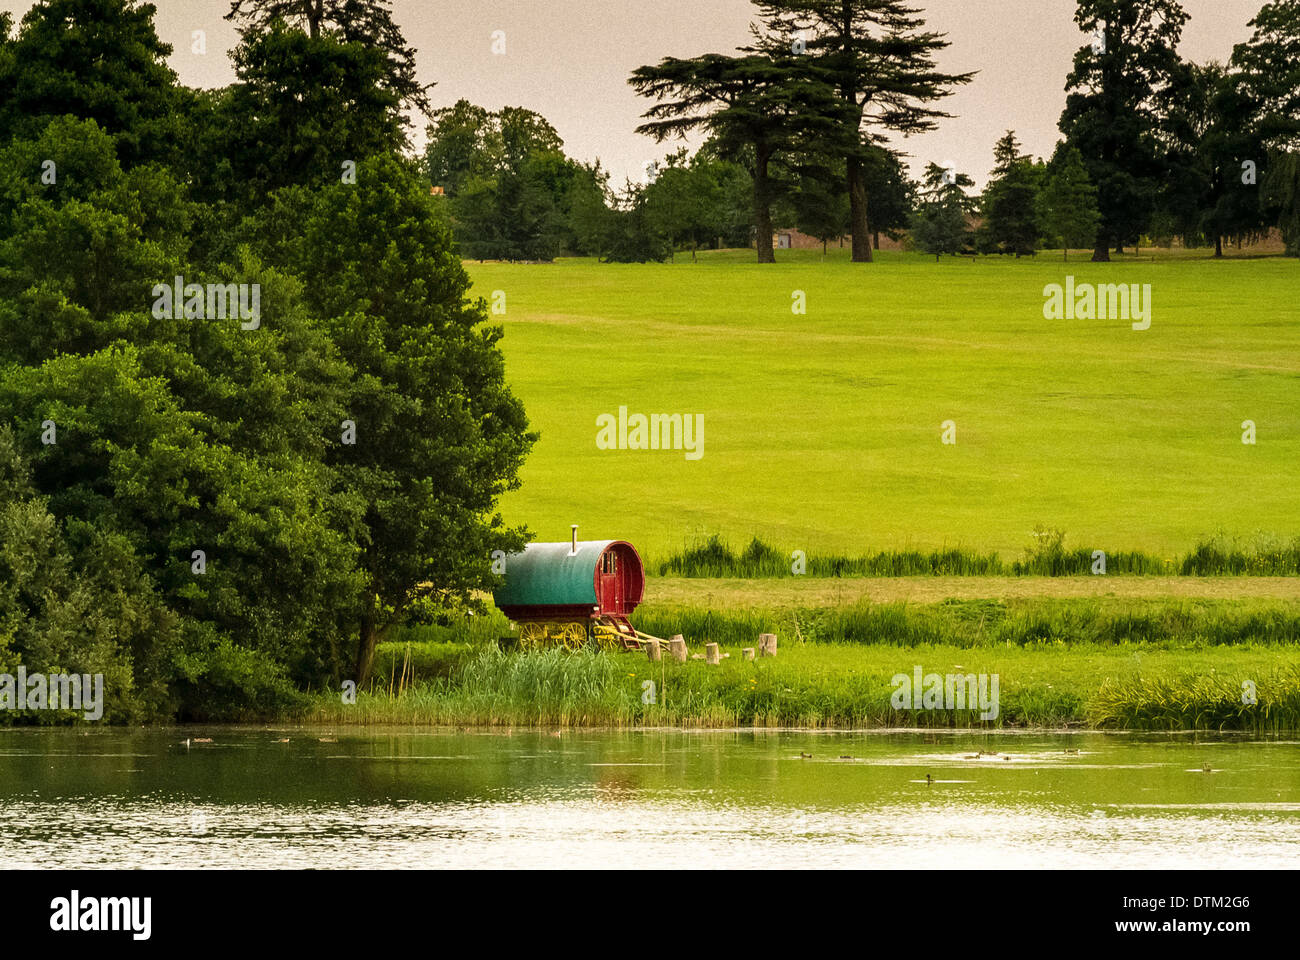 Traditional style Gypsy caravan nestled in trees at side of lake - Stock Image